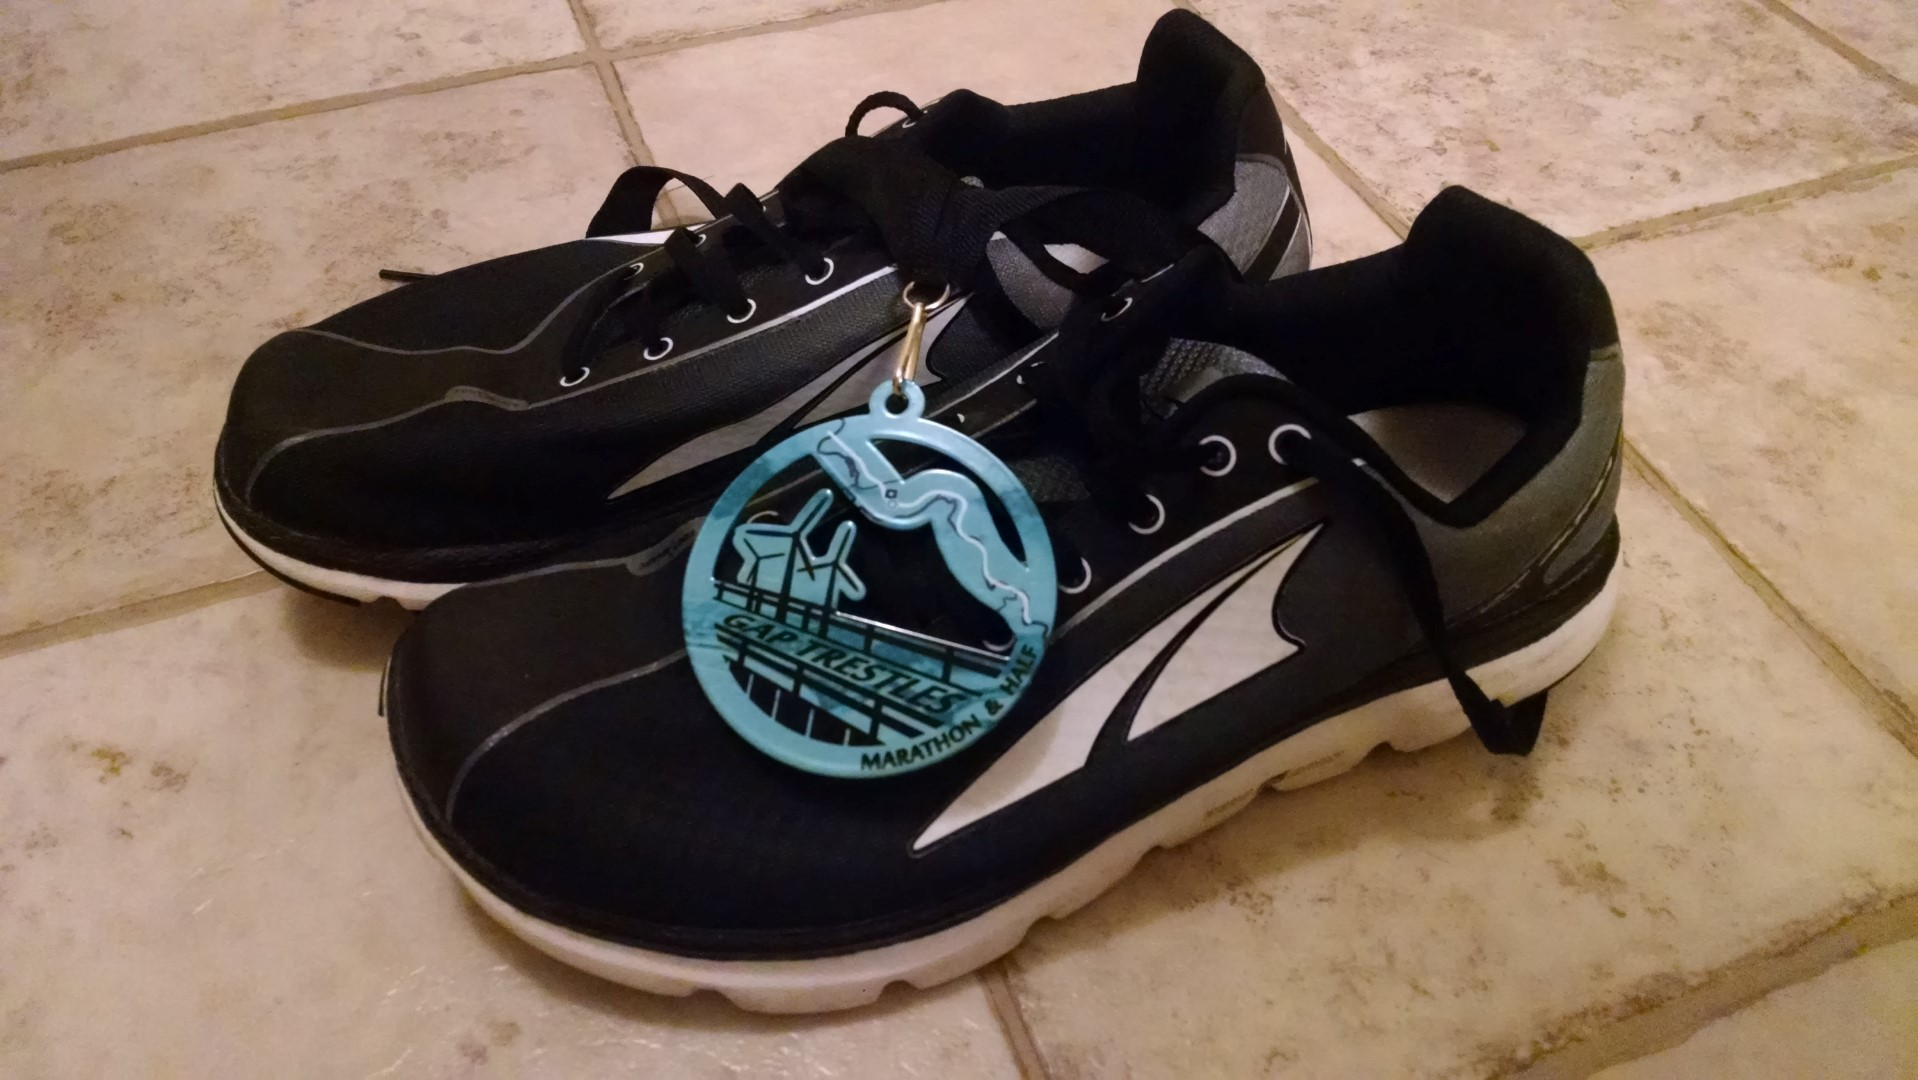 The GAP Trestles Marathon – The story of my first 26.2